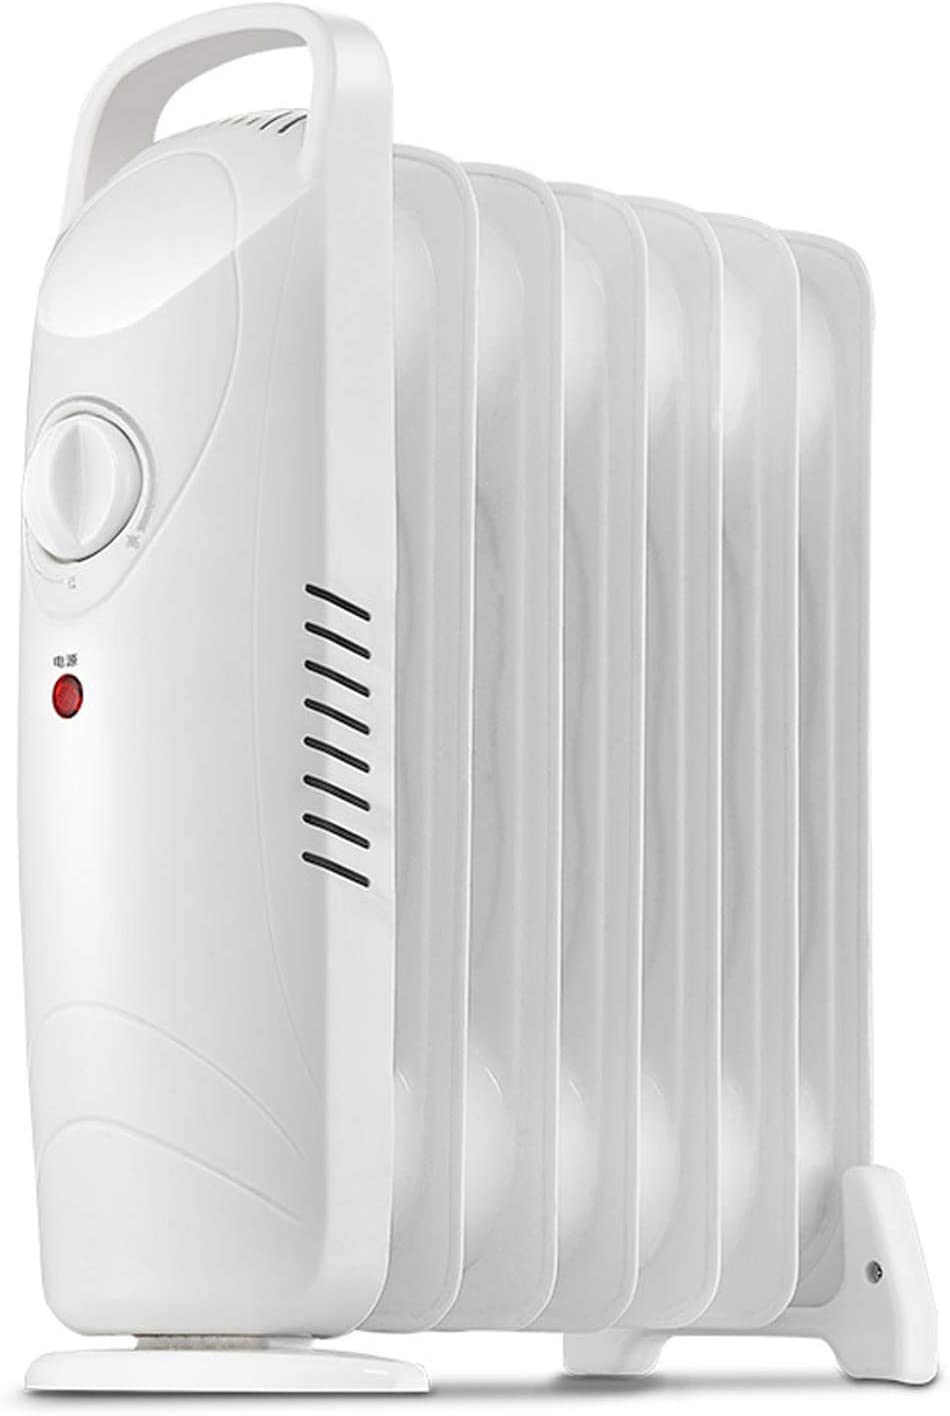 Byjia Electric Oil Heater, 700W Mini Space Heater, Oil-Filled Radiator with Adjustable Thermostat, Overheat Protection, Energy Saving Quiet Portable Oil Heater for Home